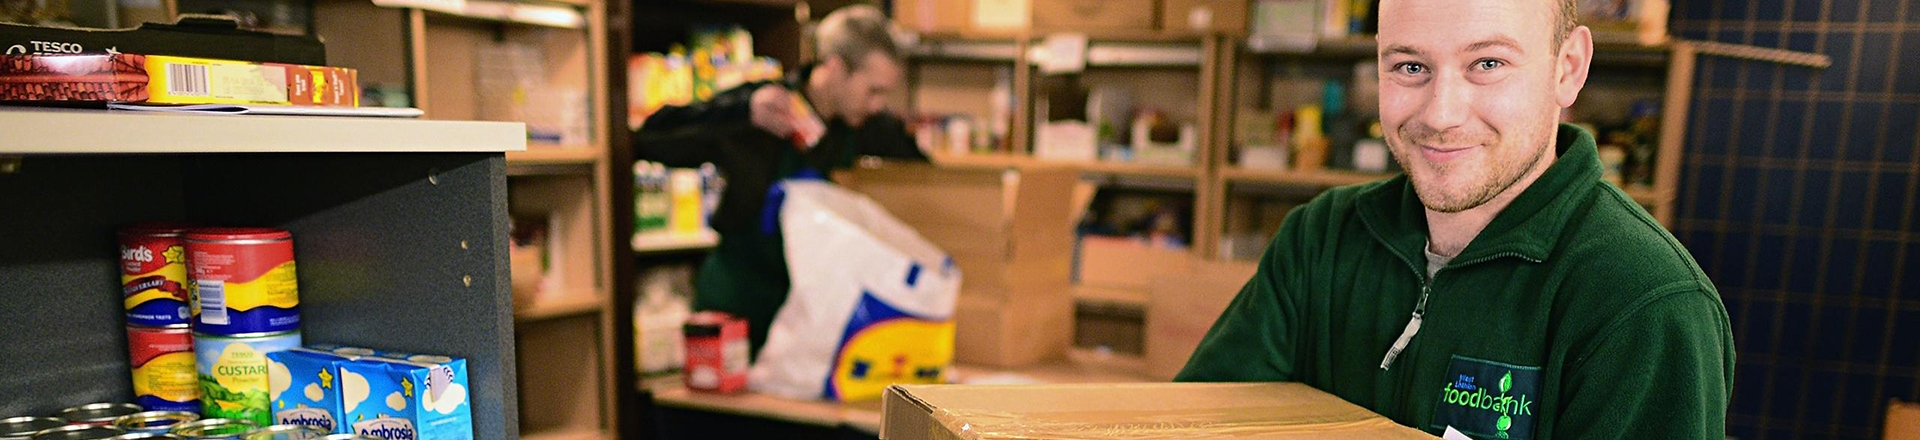 A volunteer working in a Trussell Trust food bank